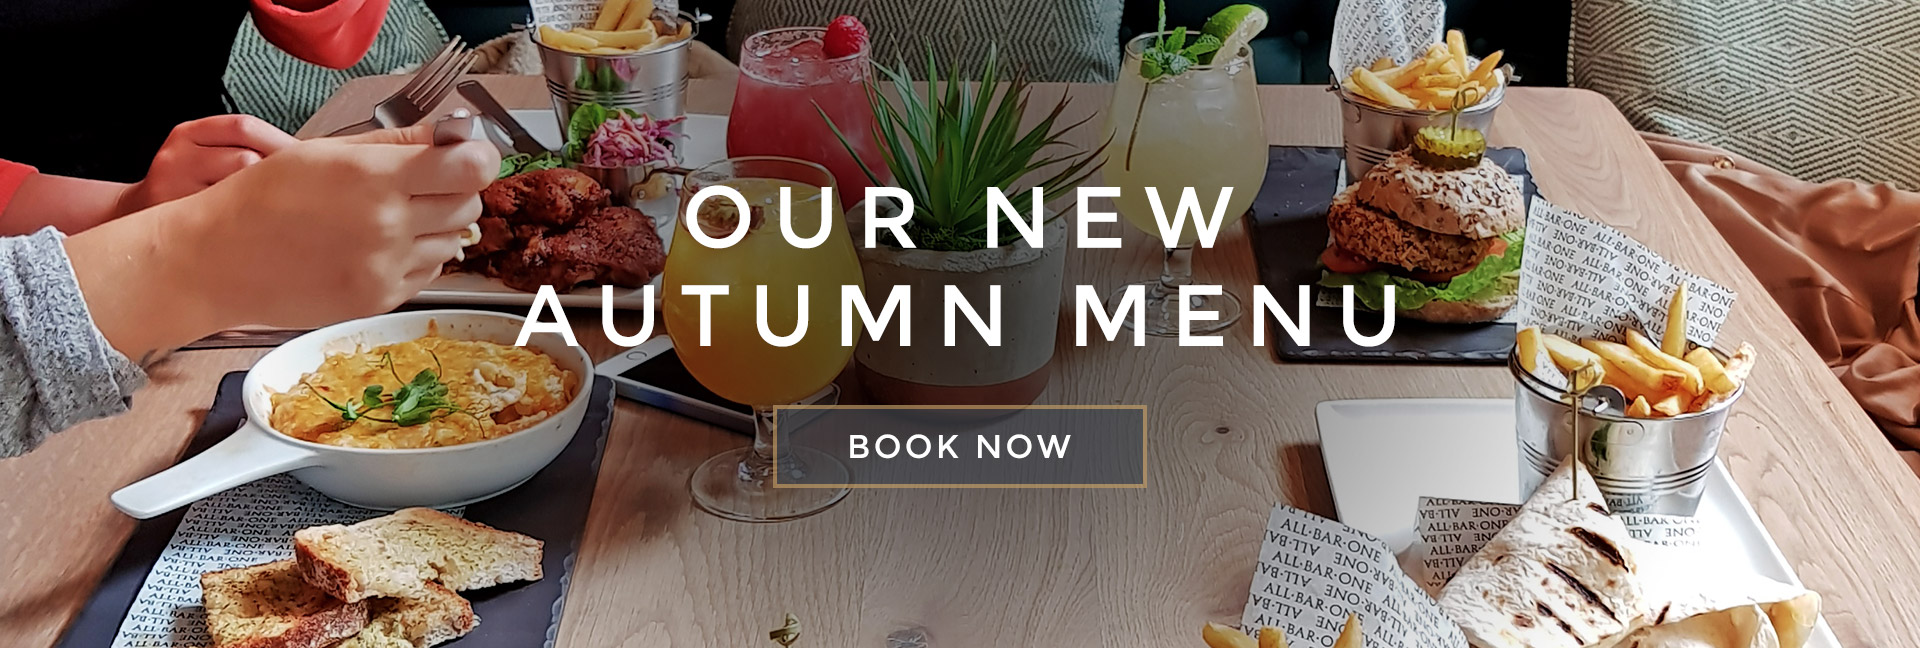 Our new Autumn menu at All Bar One Sheffield - Book now